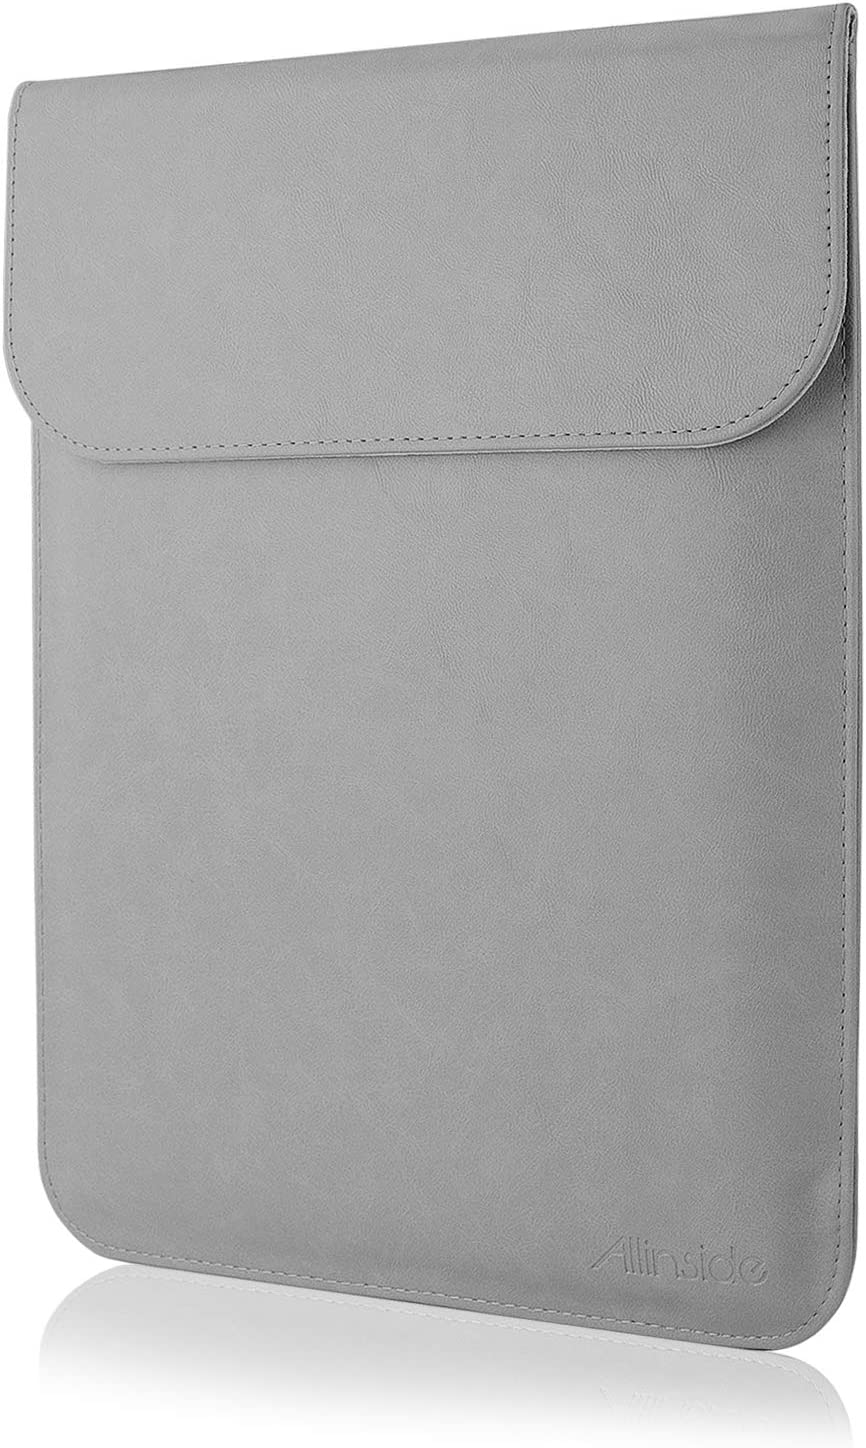 "Allinside 15.6"" Laptop Sleeve for MacBook Pro 15 2012-2015 (A1398)/ Pro 15 Retina 2016-2019 Touch Bar (A1990 A1707)/ MacBook Pro 16 (A2141), Synthetic Leather, Gray"